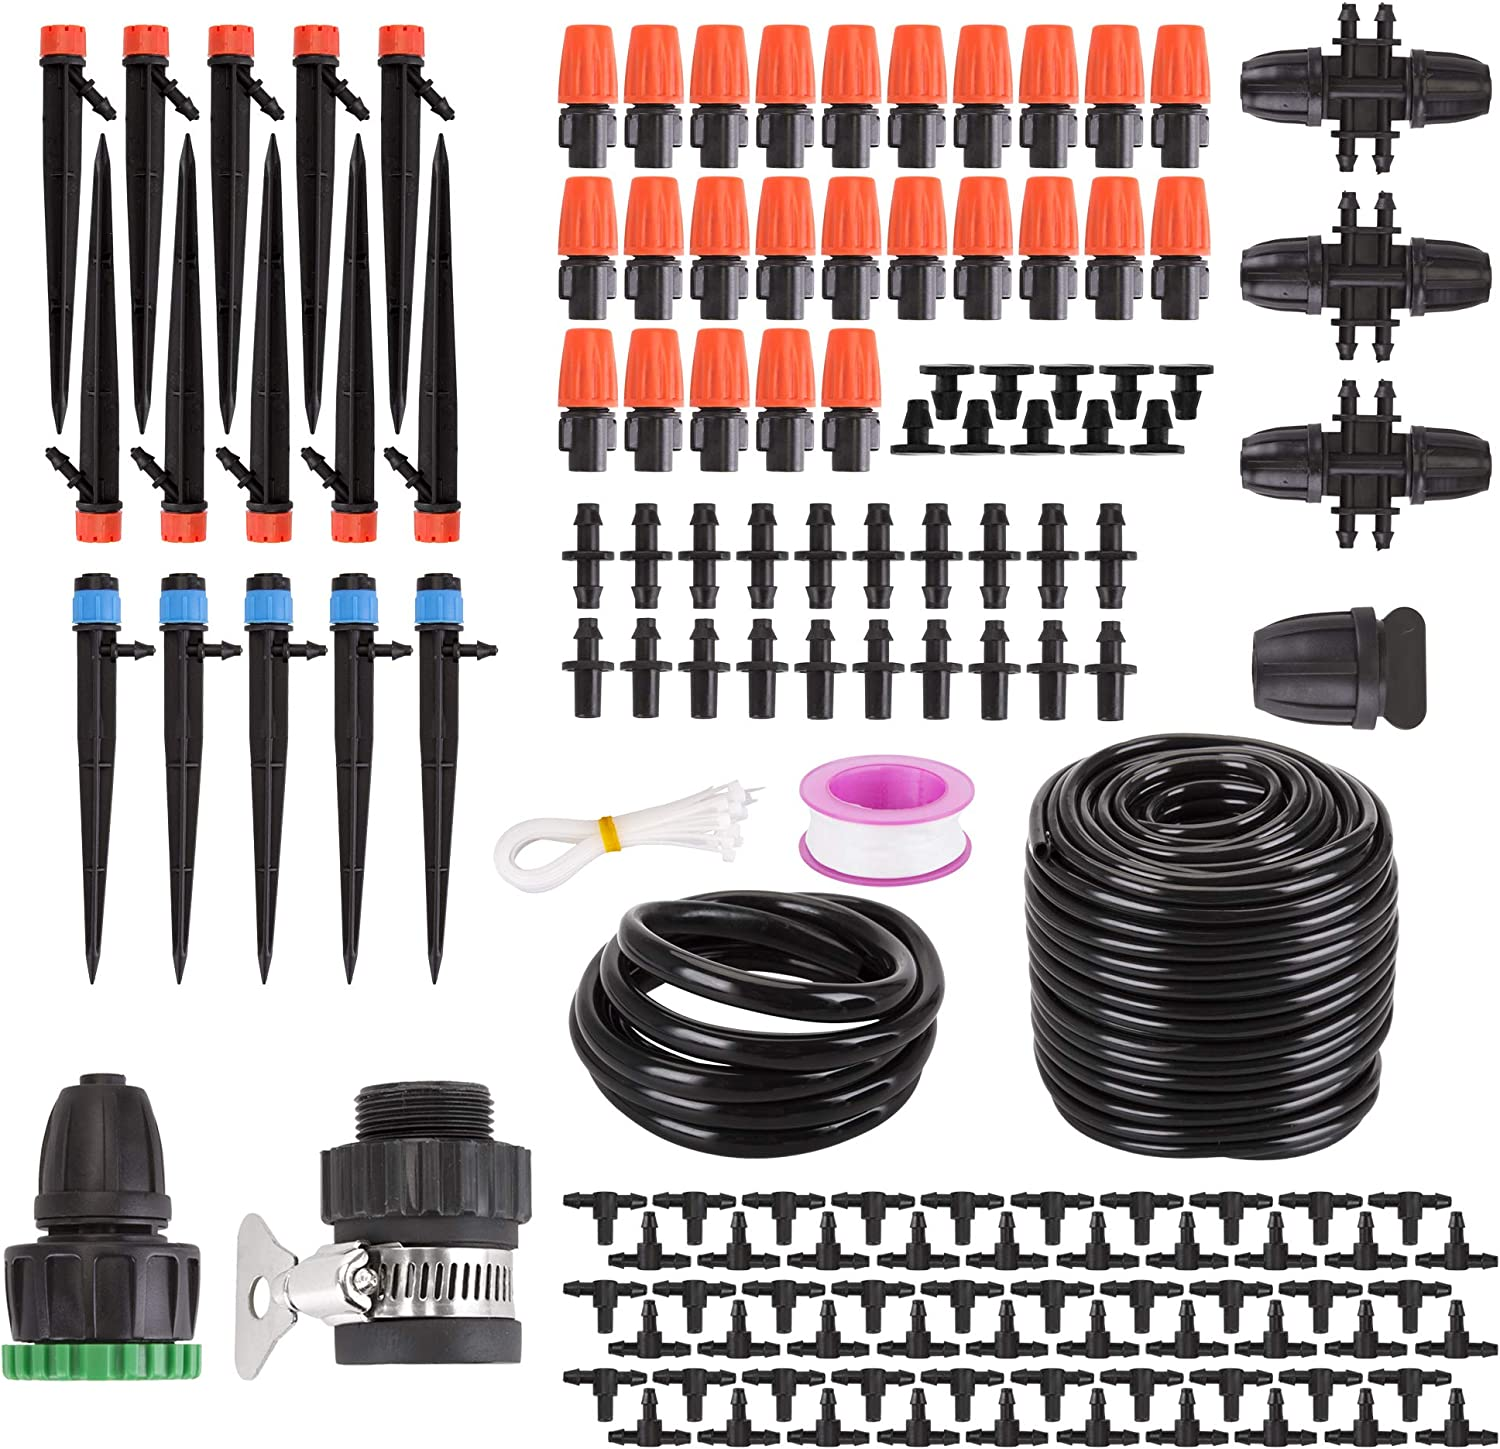 """XOOL Drip Irrigation Kit, 137ft/42M Garden Irrigation System, Adjustable Automatic Micro Irrigation Kits,1/4"""" Blank Distribution Tubing Hose Suit for Garden Greenhouse, Flower Bed,Patio,Lawn (42M)"""